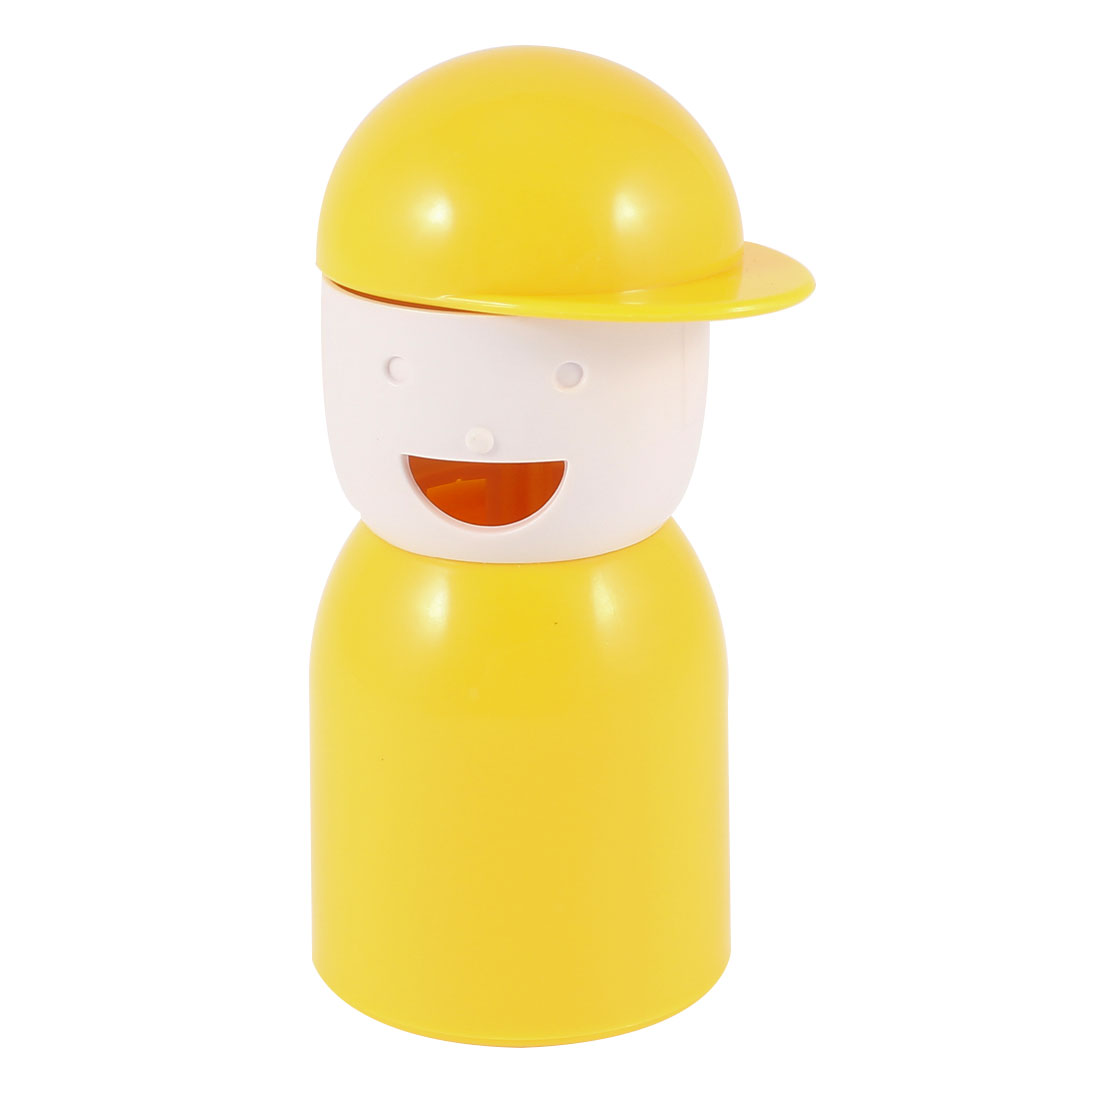 Kitchen Table Decor Picky Boy Shape Toothpick Holder Organizer Yellow